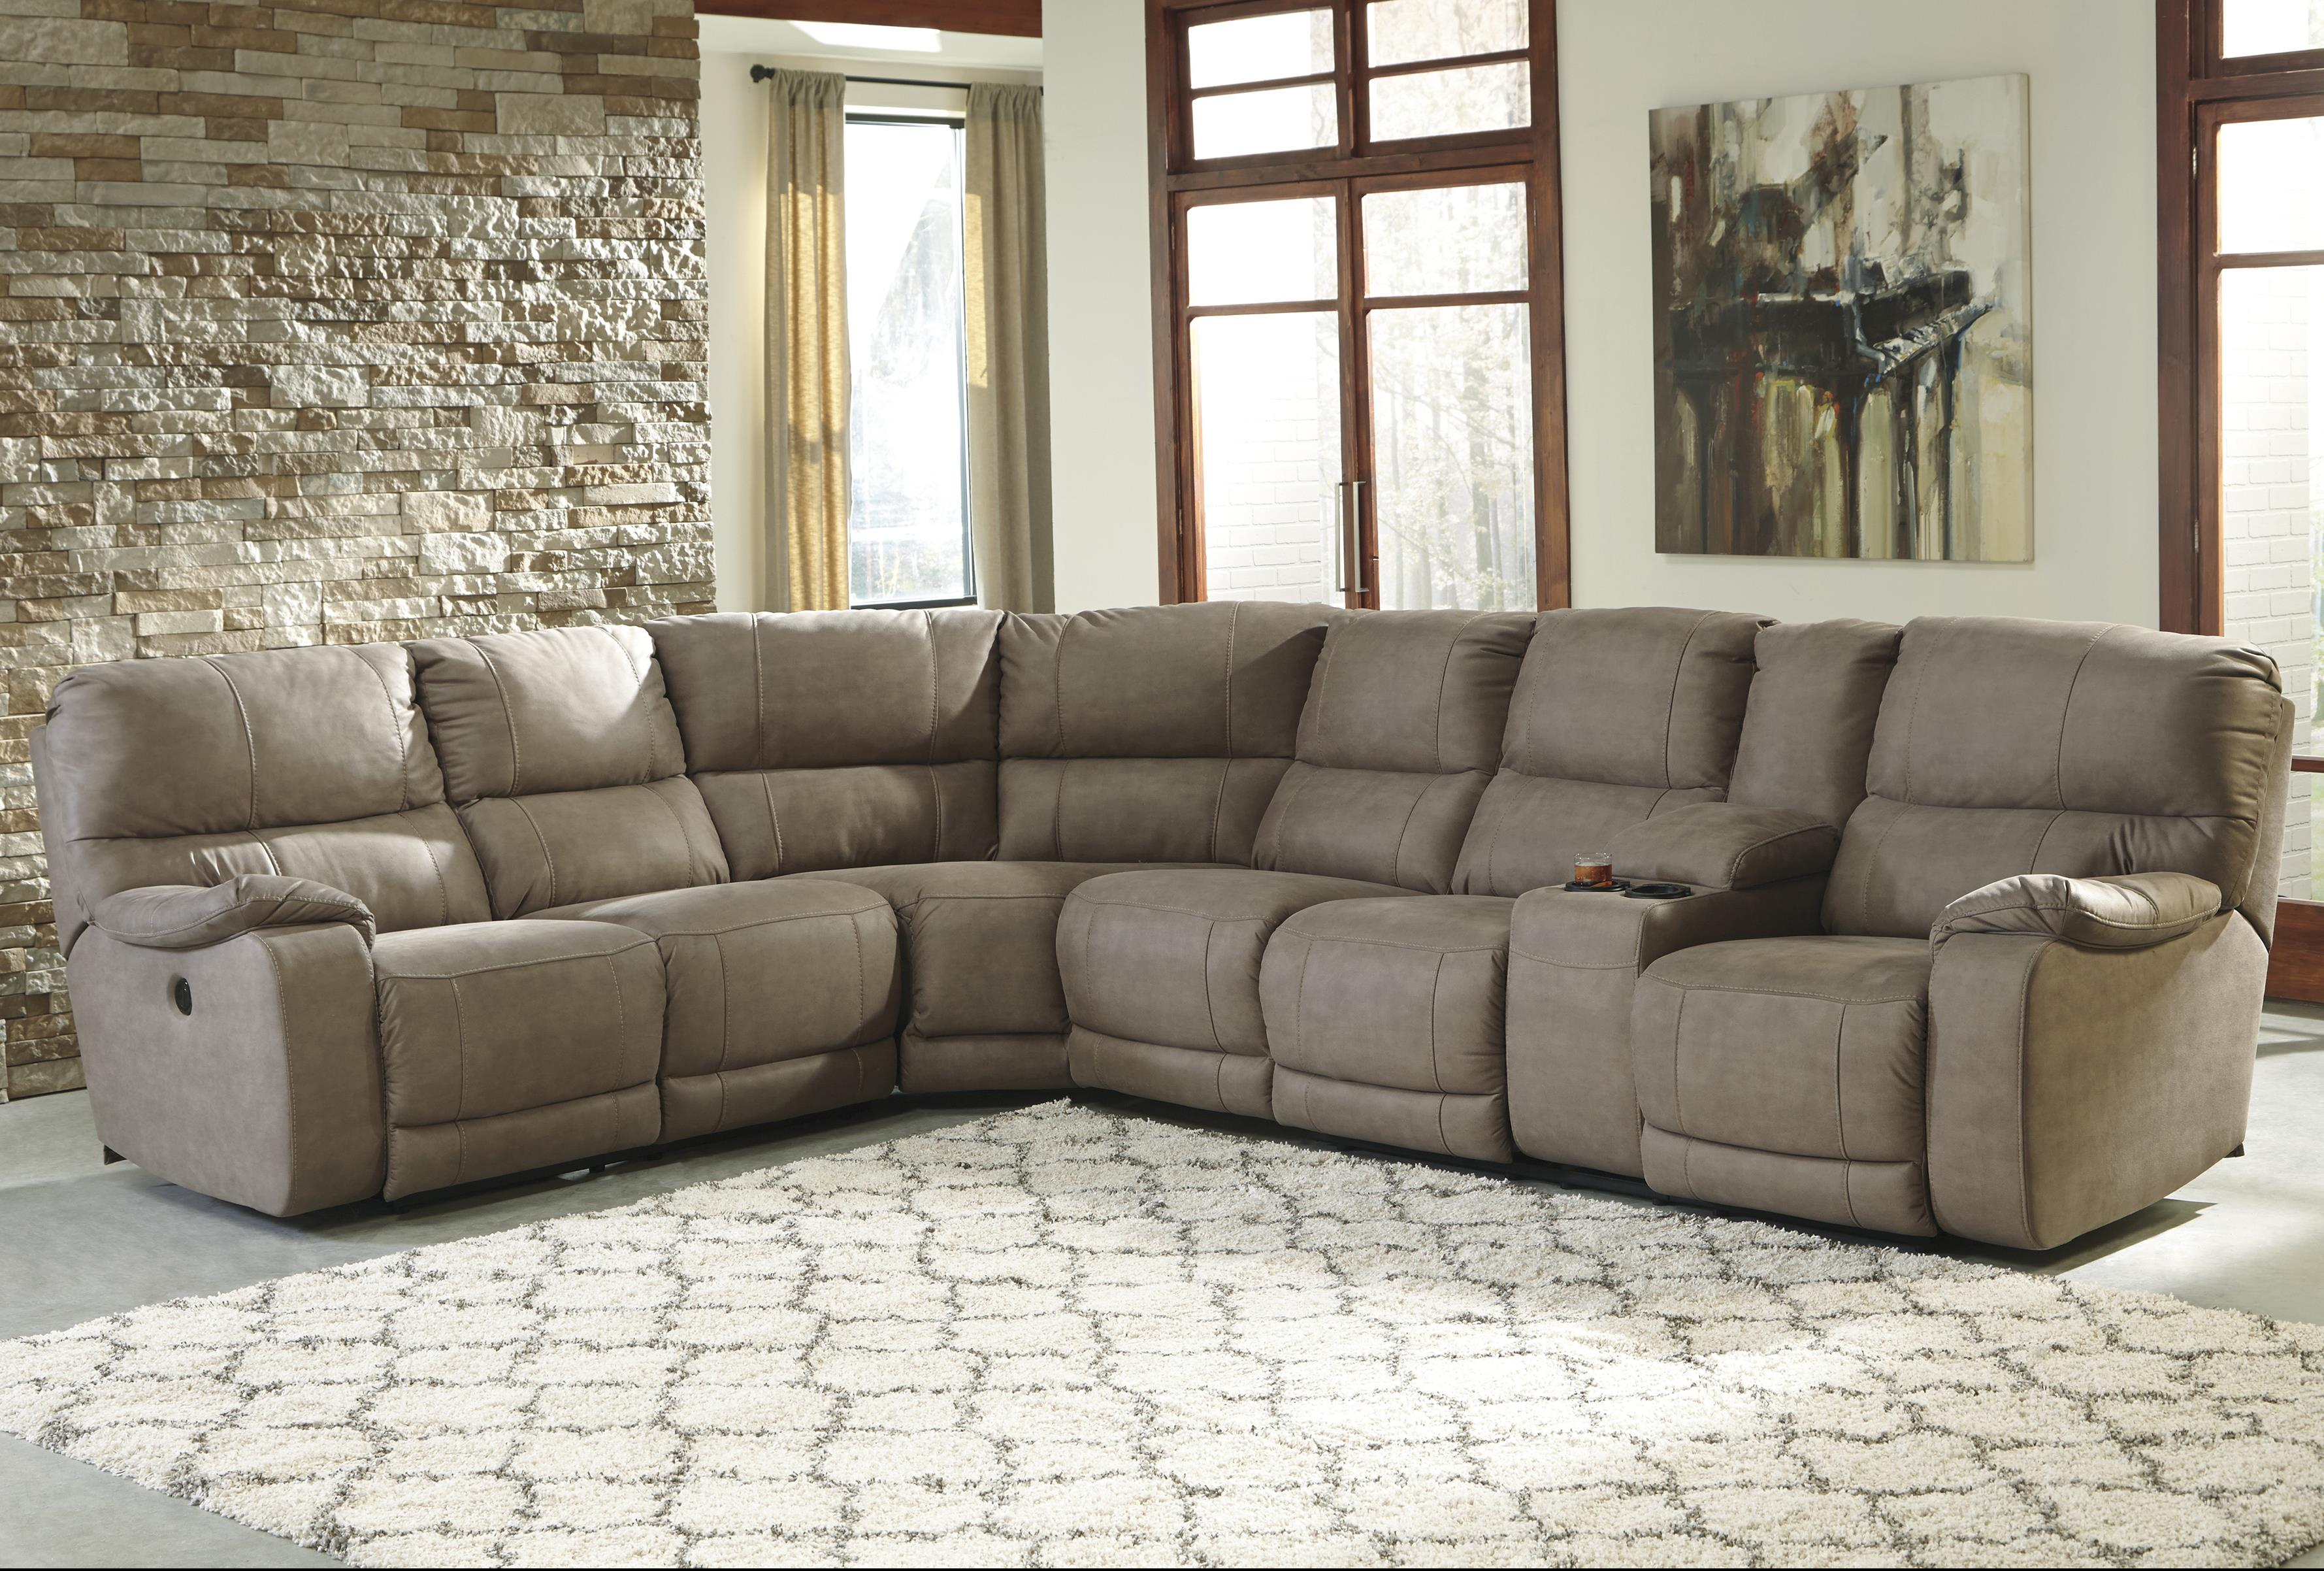 Power Reclining Sectional with Console : benchcraft sectional - Sectionals, Sofas & Couches